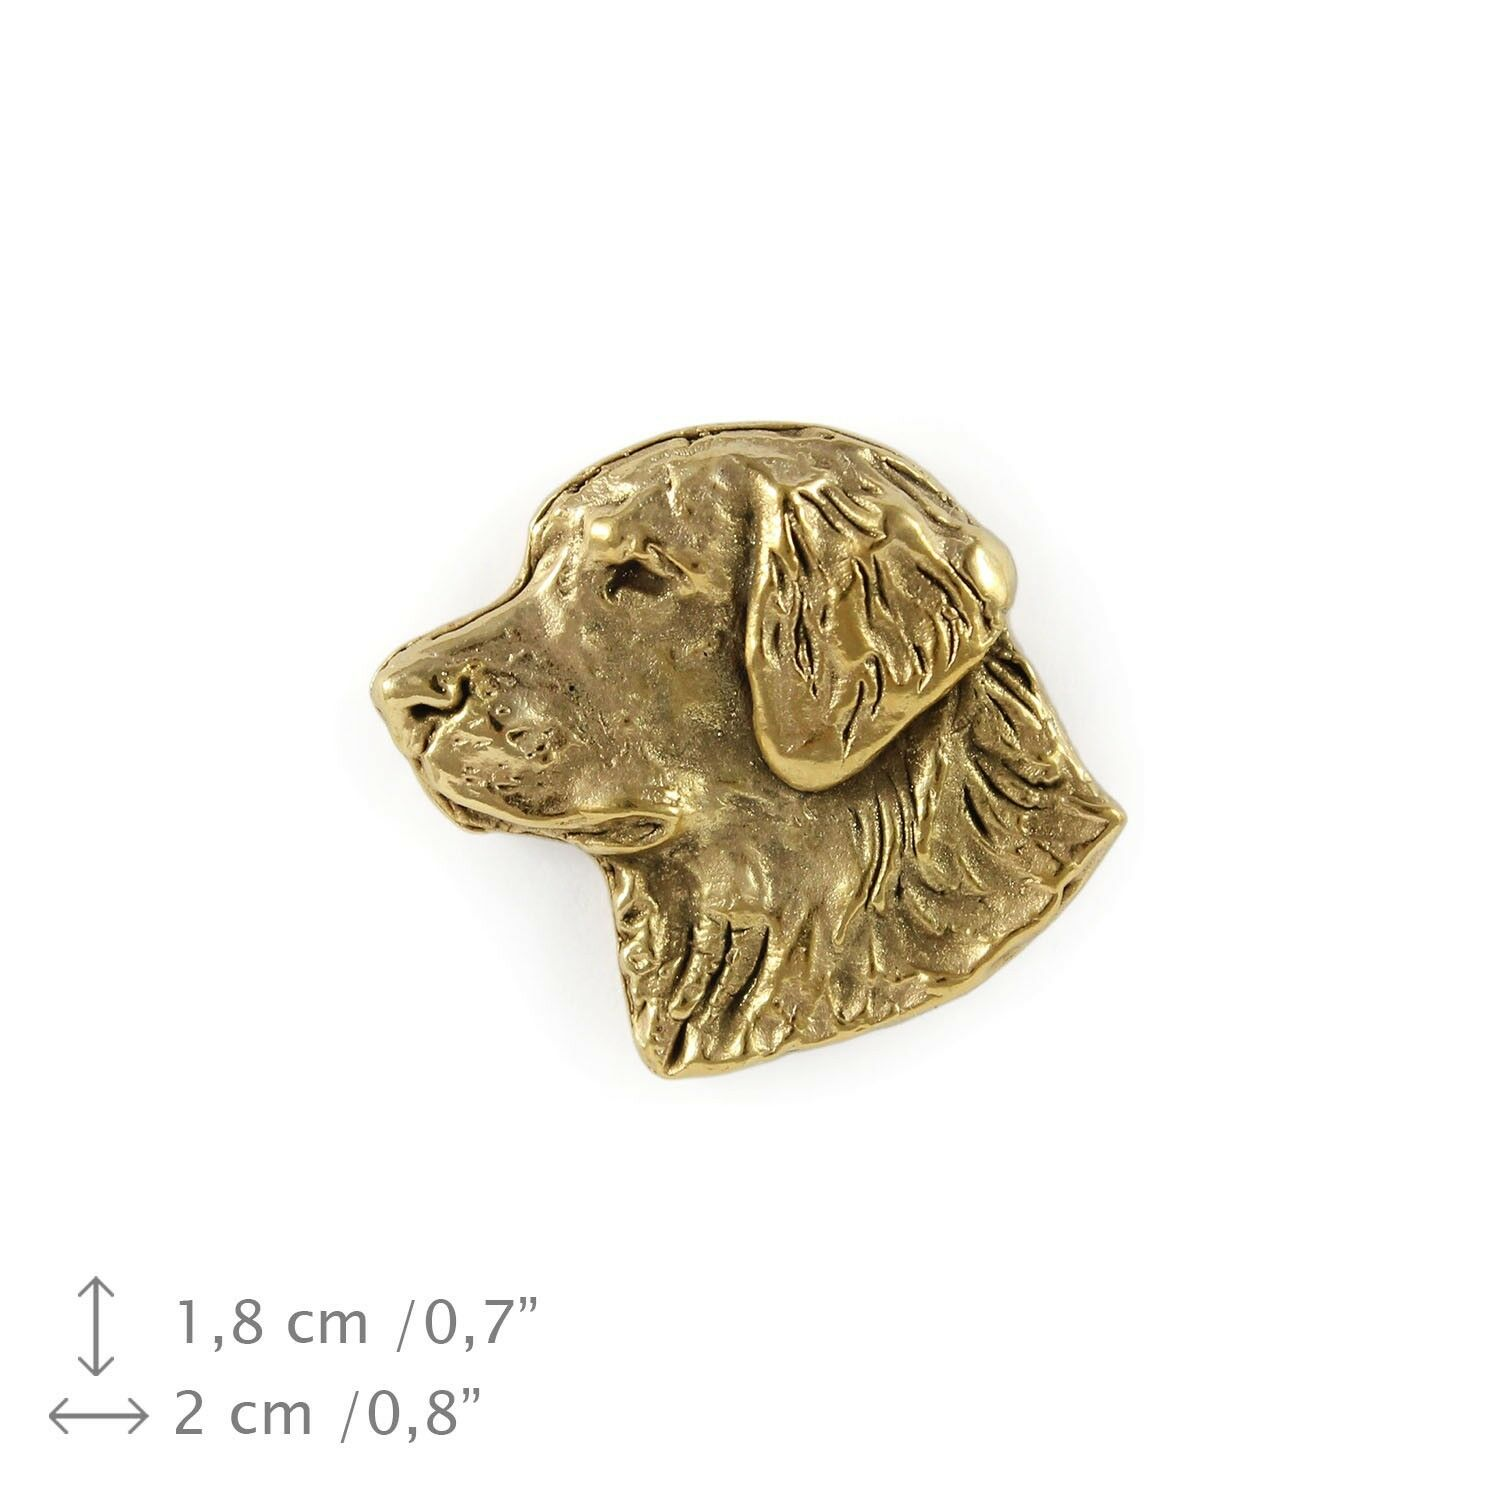 golden Retriever type 2 - dog, gold covered pin with dog, high quality, Art Dog